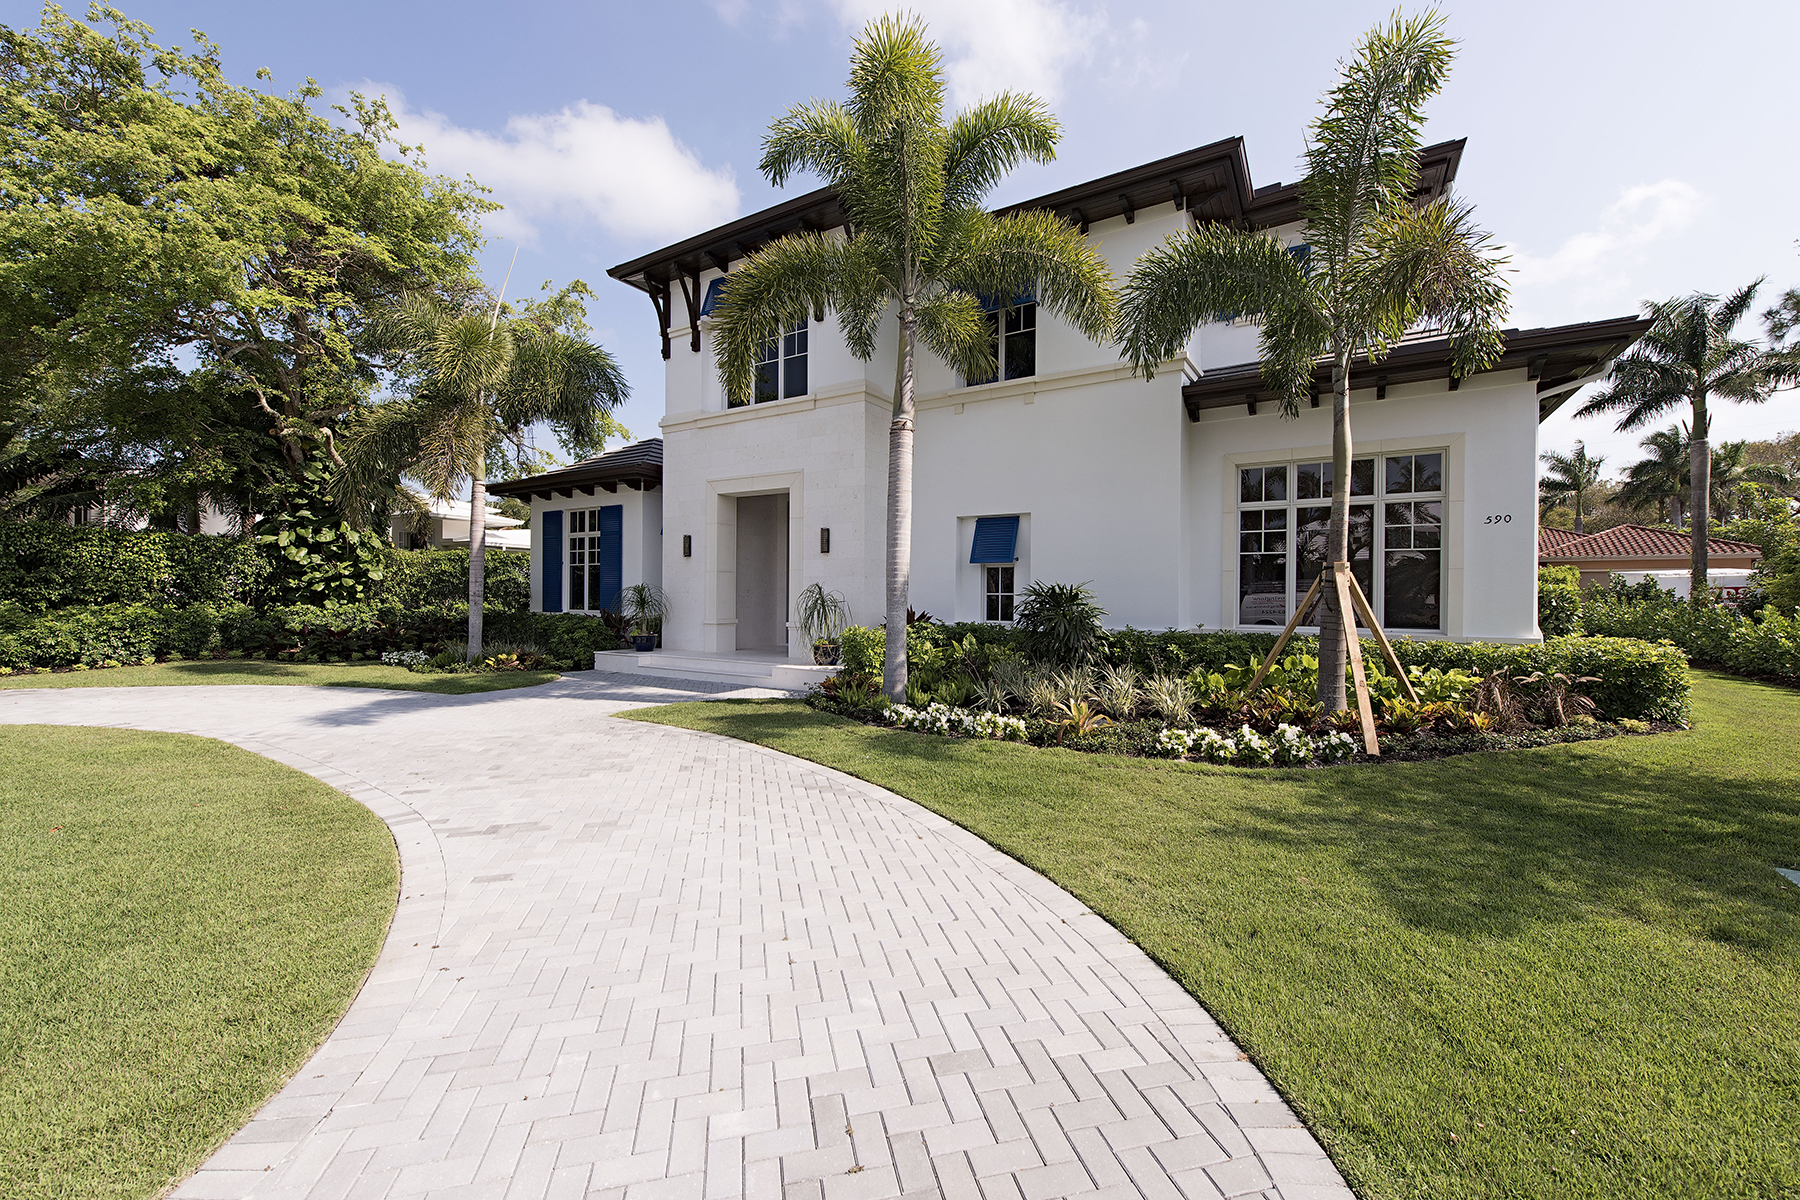 Single Family Home for Sale at Olde Naples 590 Palm Cir E, Naples, Florida 34102 United States